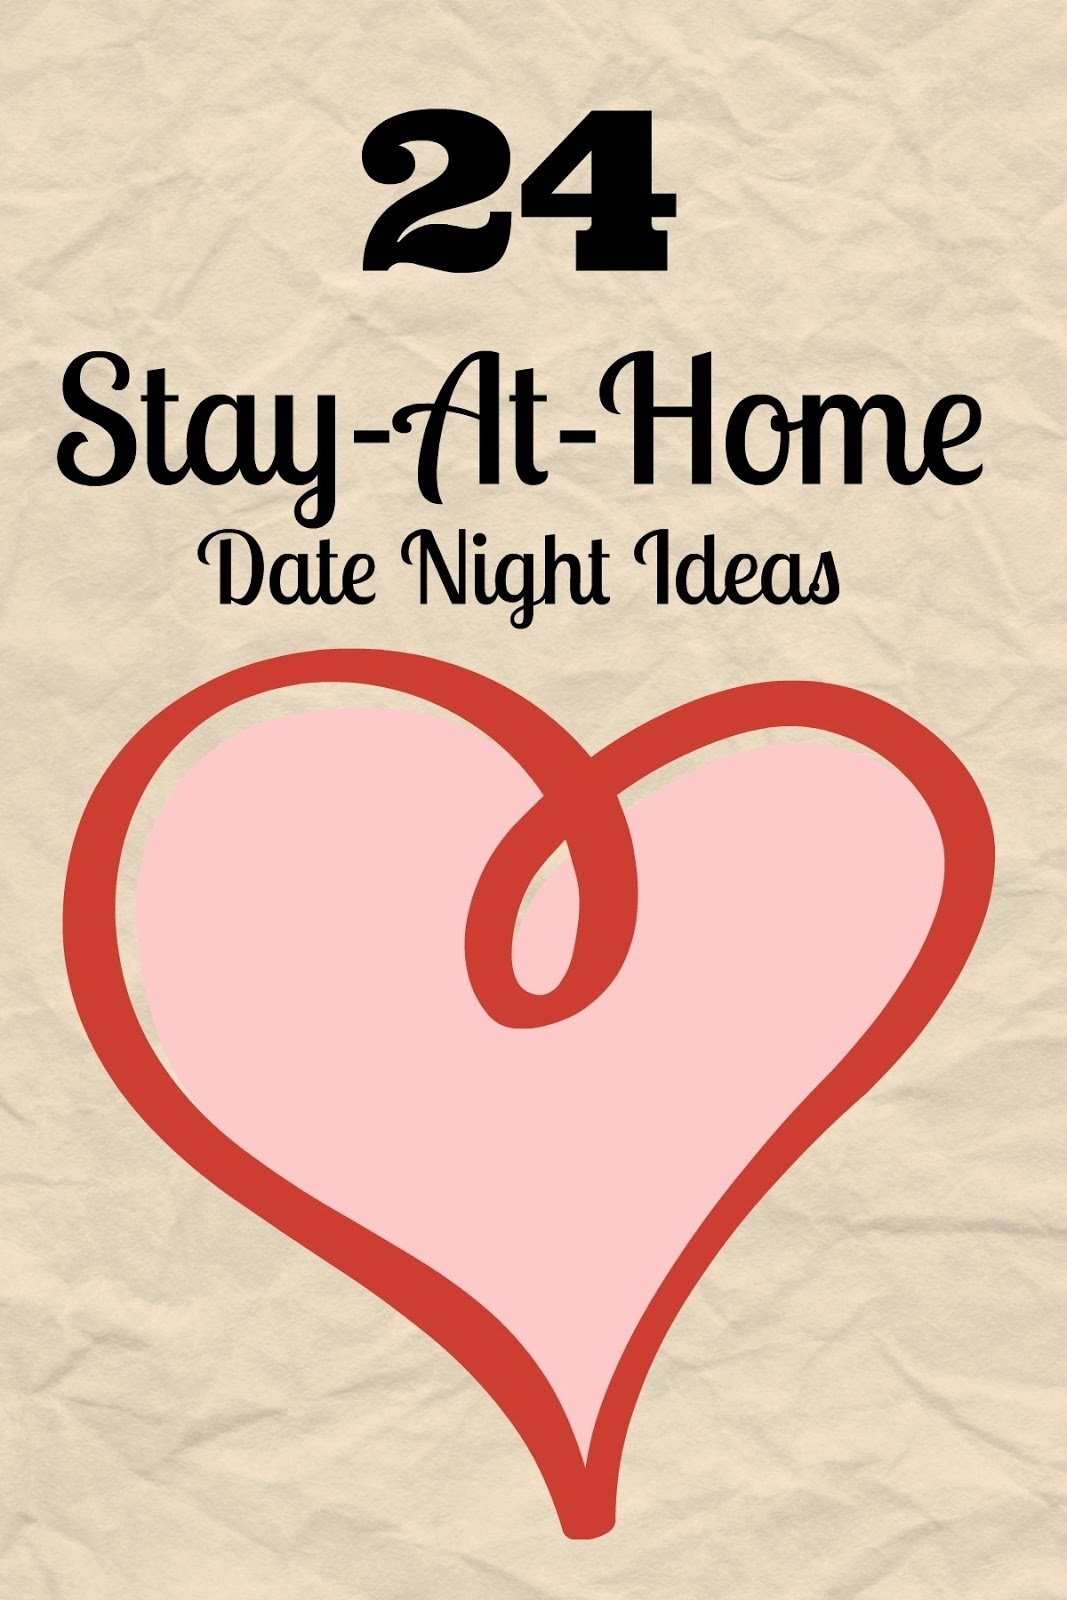 24 stay-at-home date night ideas. fun, easy, affordable date ideas